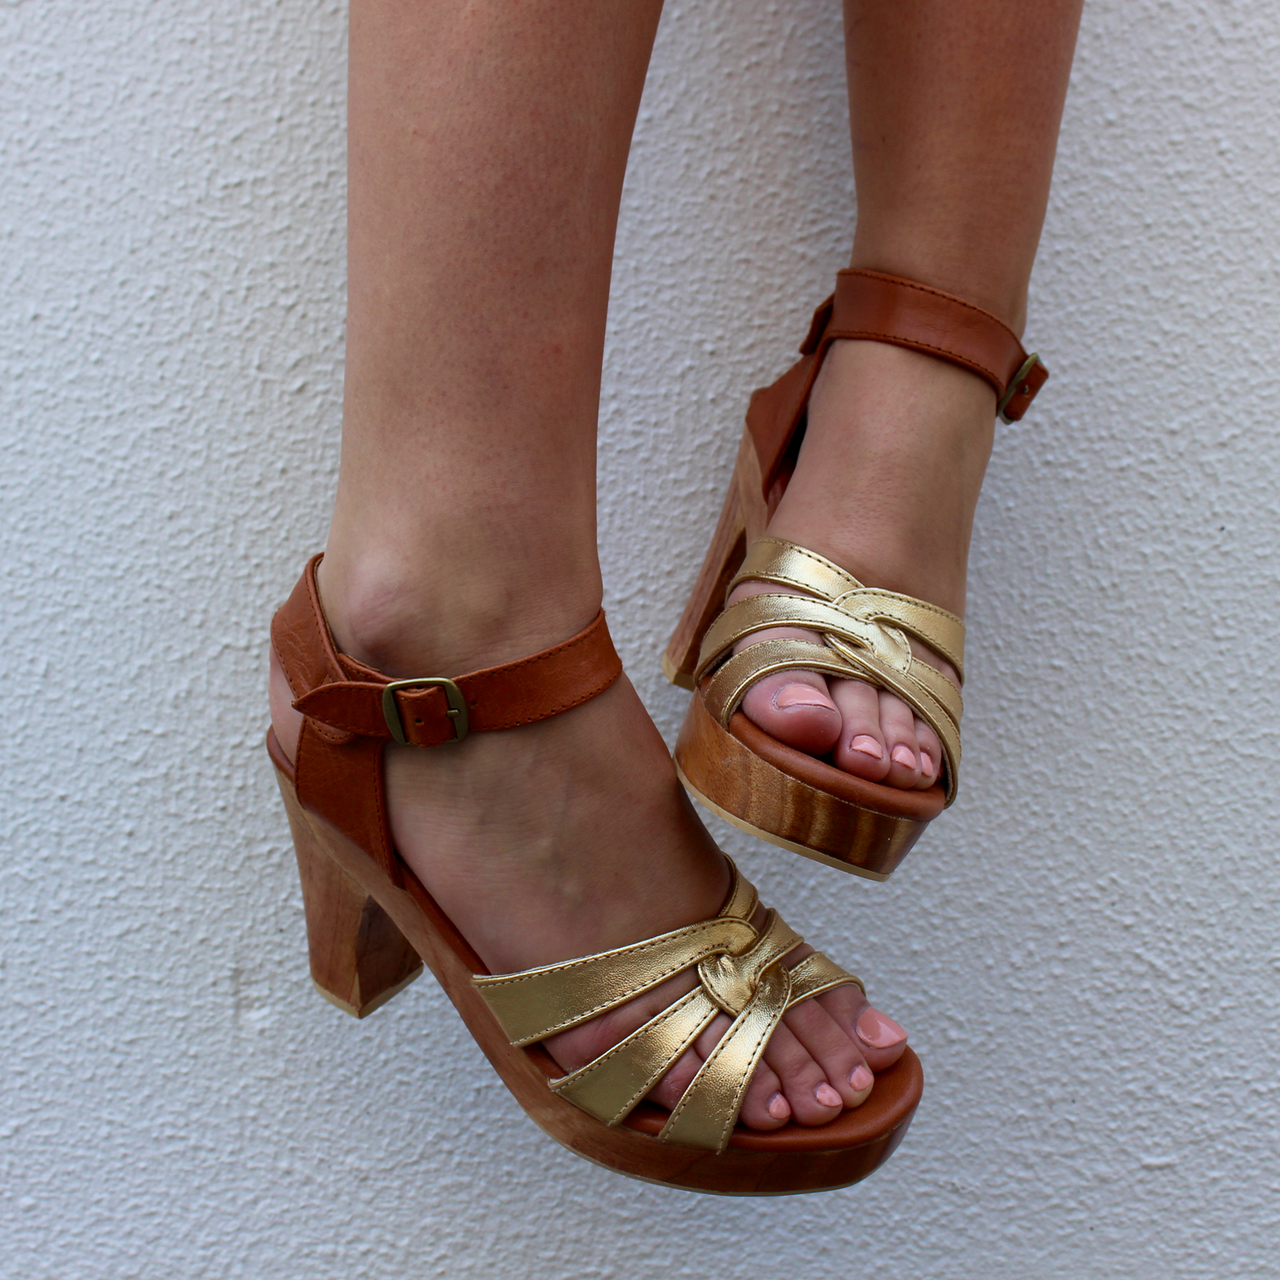 LIMITED EDITION SAGE GOLD FRONT/ TAN ANKLE